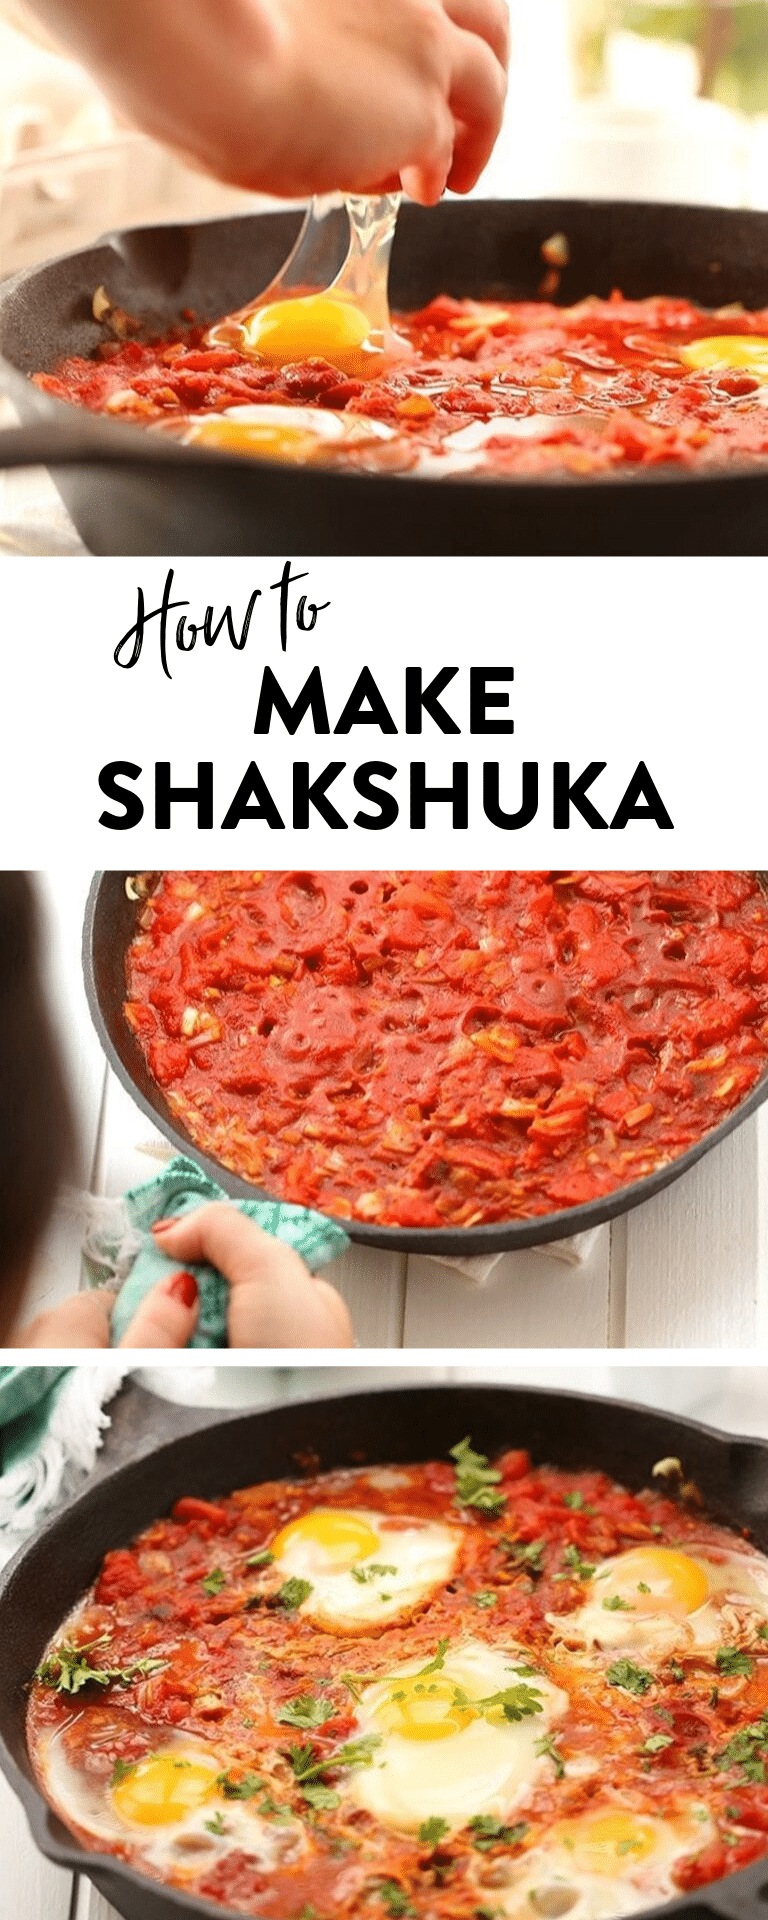 Have you wanted to learn how to make shakshuka? This easy shakshuka recipe teaches you how to make this traditional israeli shakshuka from scratch! #shakshuka